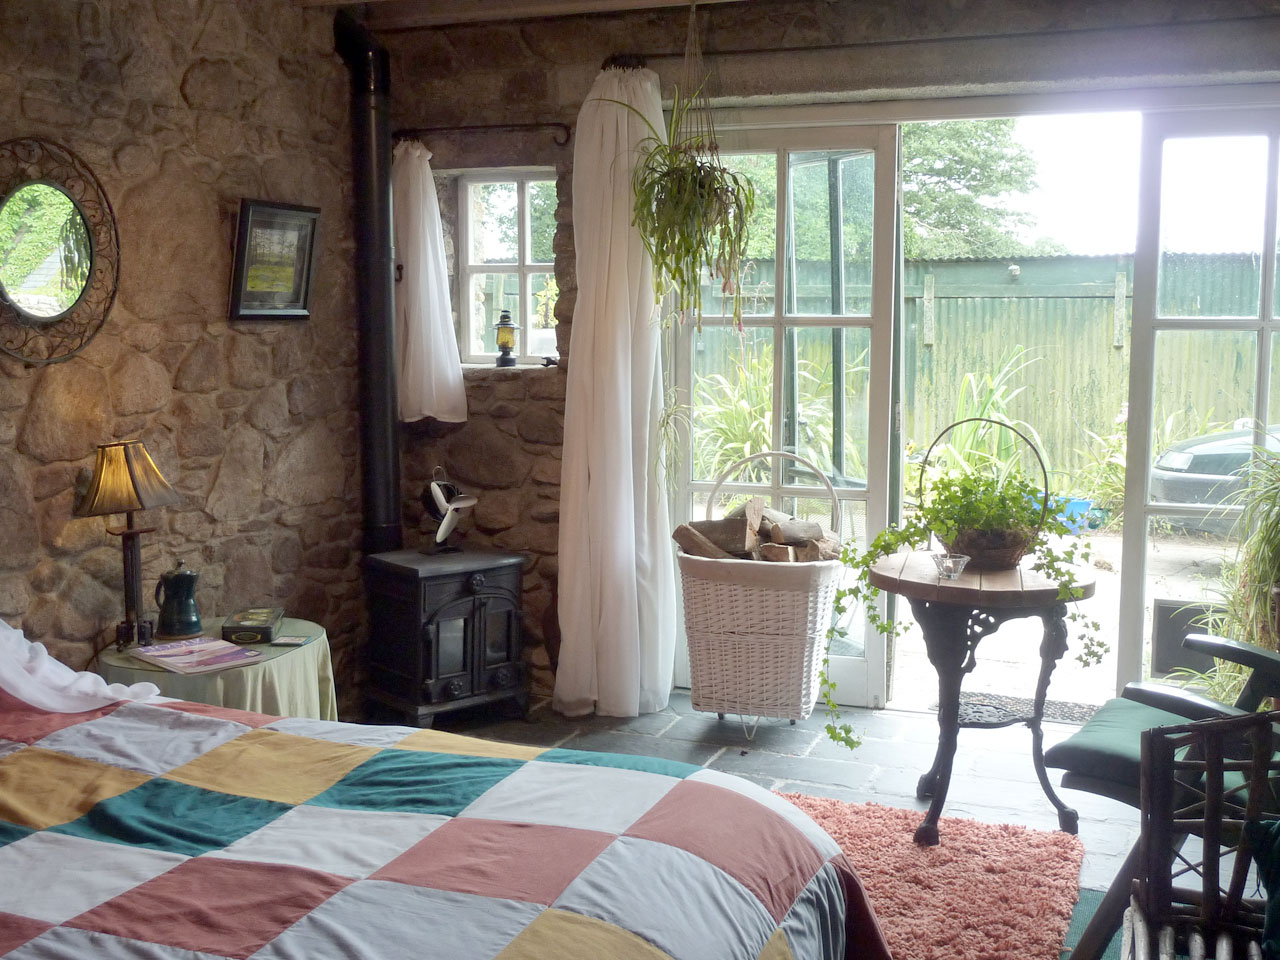 Unique Country Accommodations | The Chaff House | Co Kilkenny, Ireland